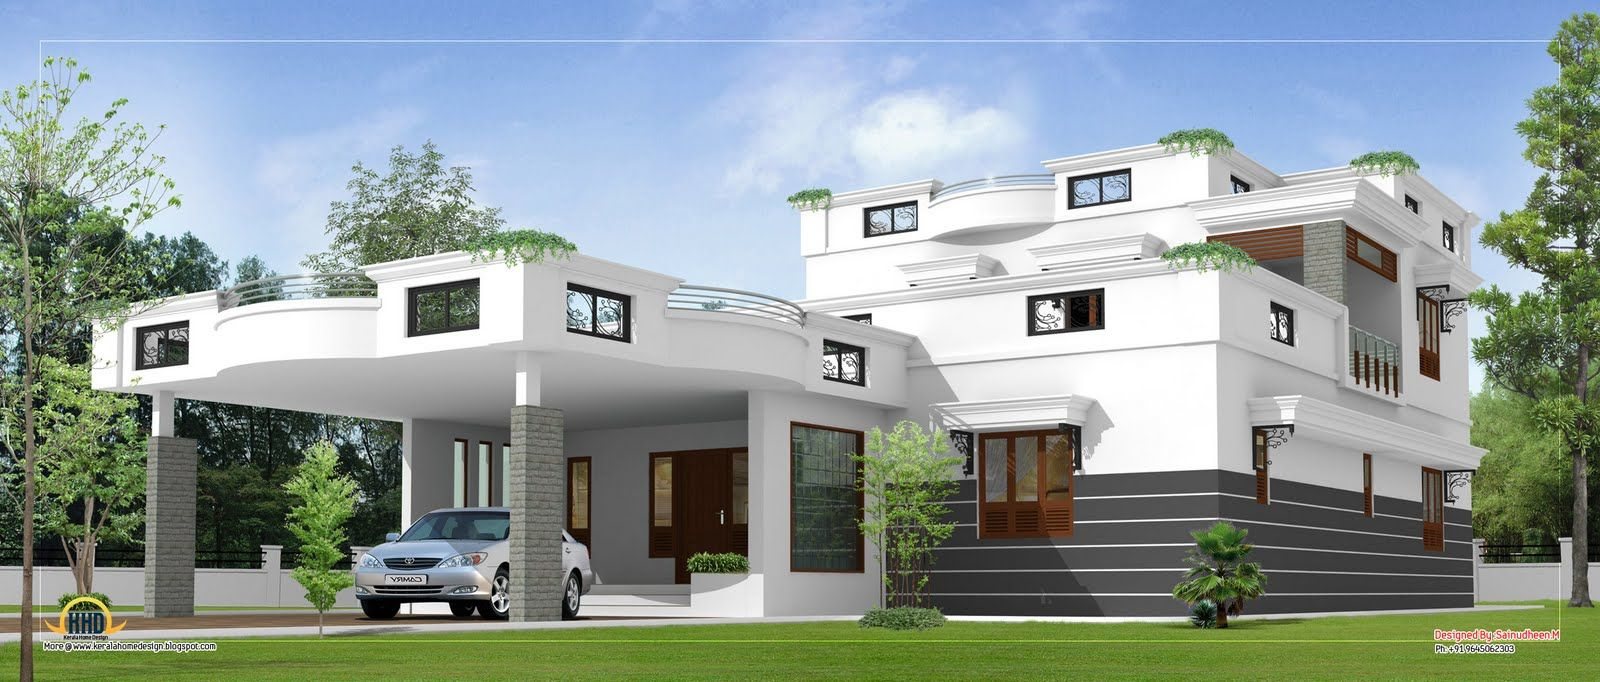 Miraculous Contemporary Home Design Images Contemporary Residential 3 Story Largest Home Design Picture Inspirations Pitcheantrous